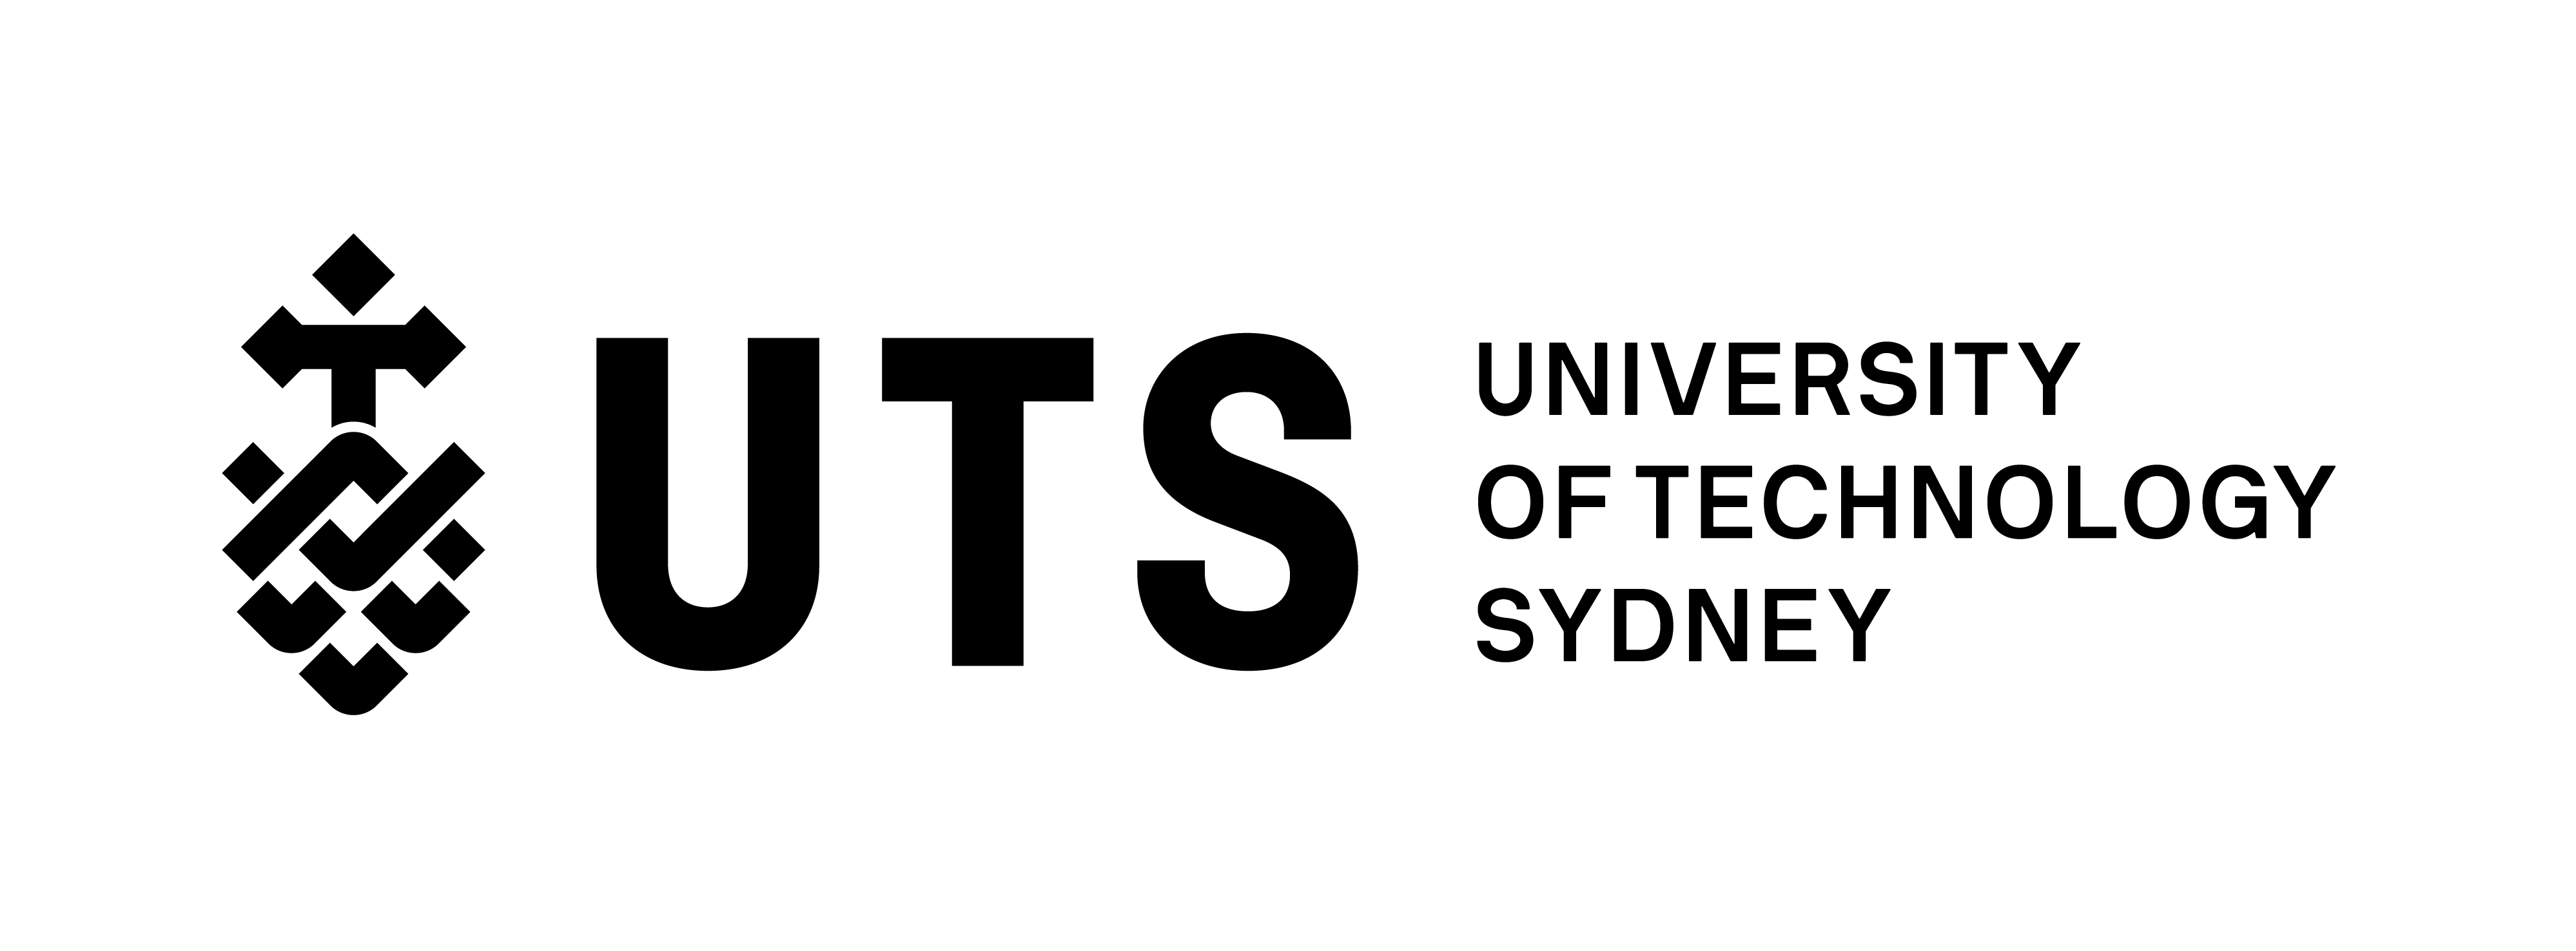 University of Technology Sydney - Bachelor of Business / Bachelor of Arts in International Studies